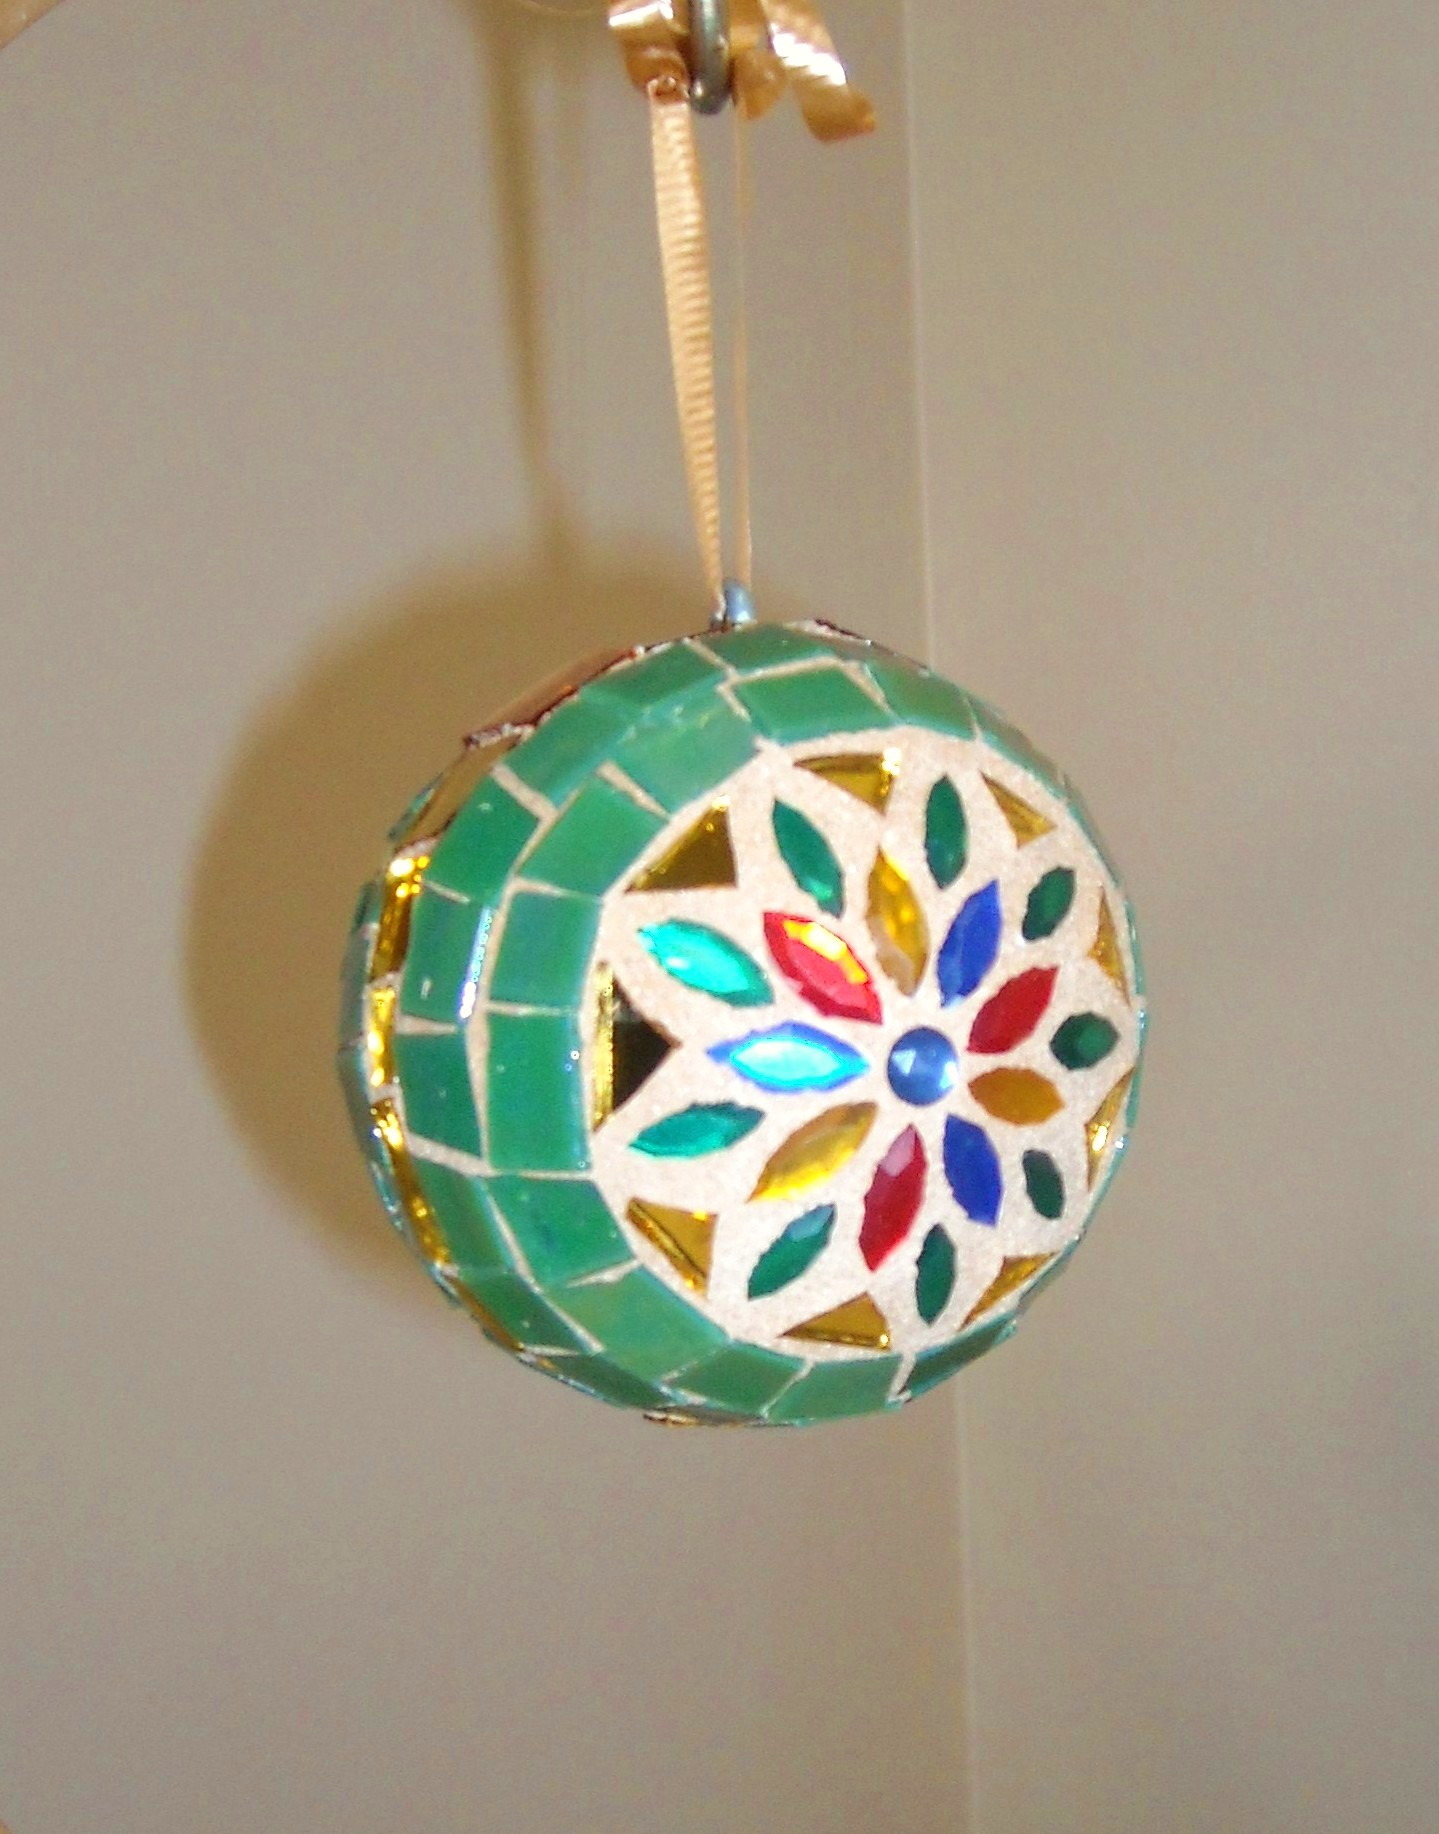 green-multi-jewel ornament